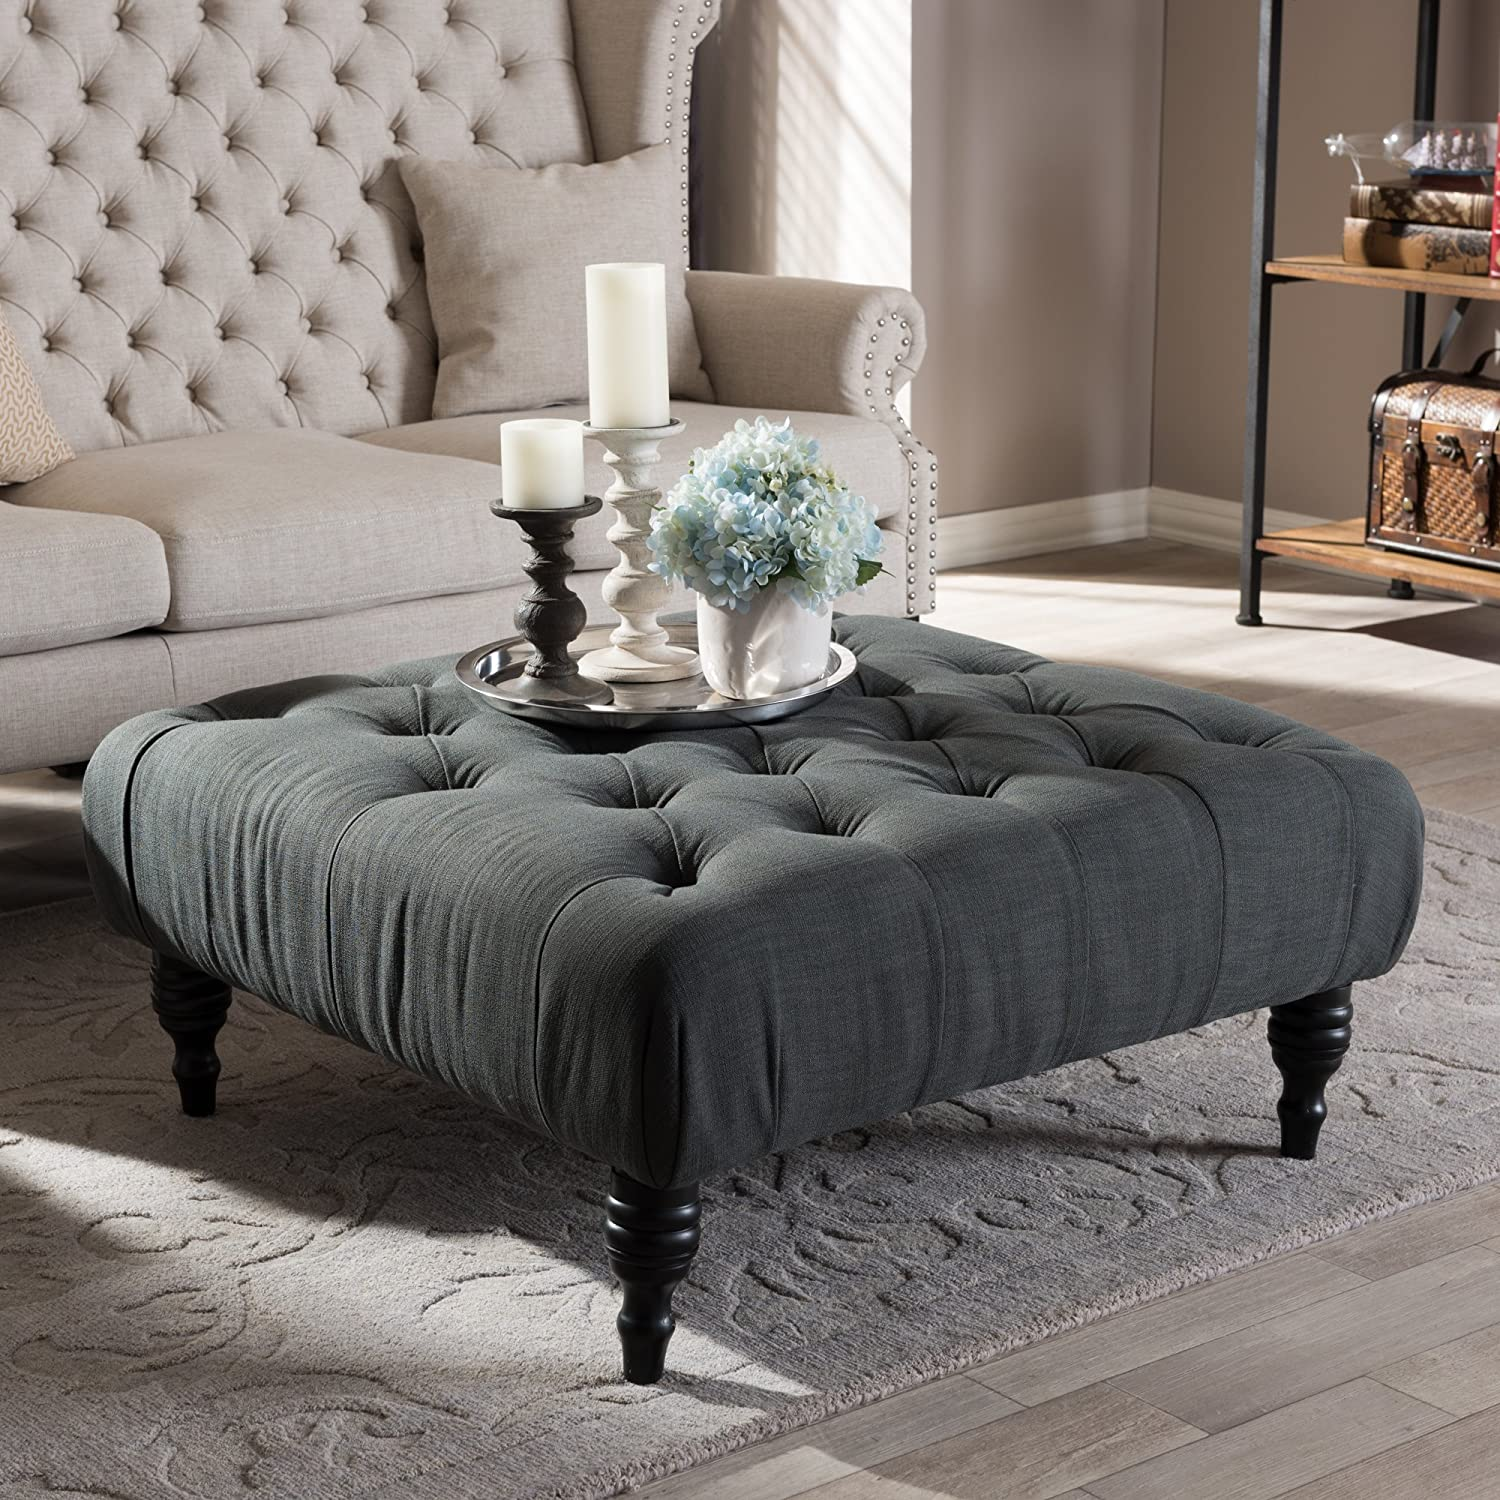 Amazon baxton studio keswick linen modern tufted ottoman amazon baxton studio keswick linen modern tufted ottoman dark gray kitchen dining geotapseo Images